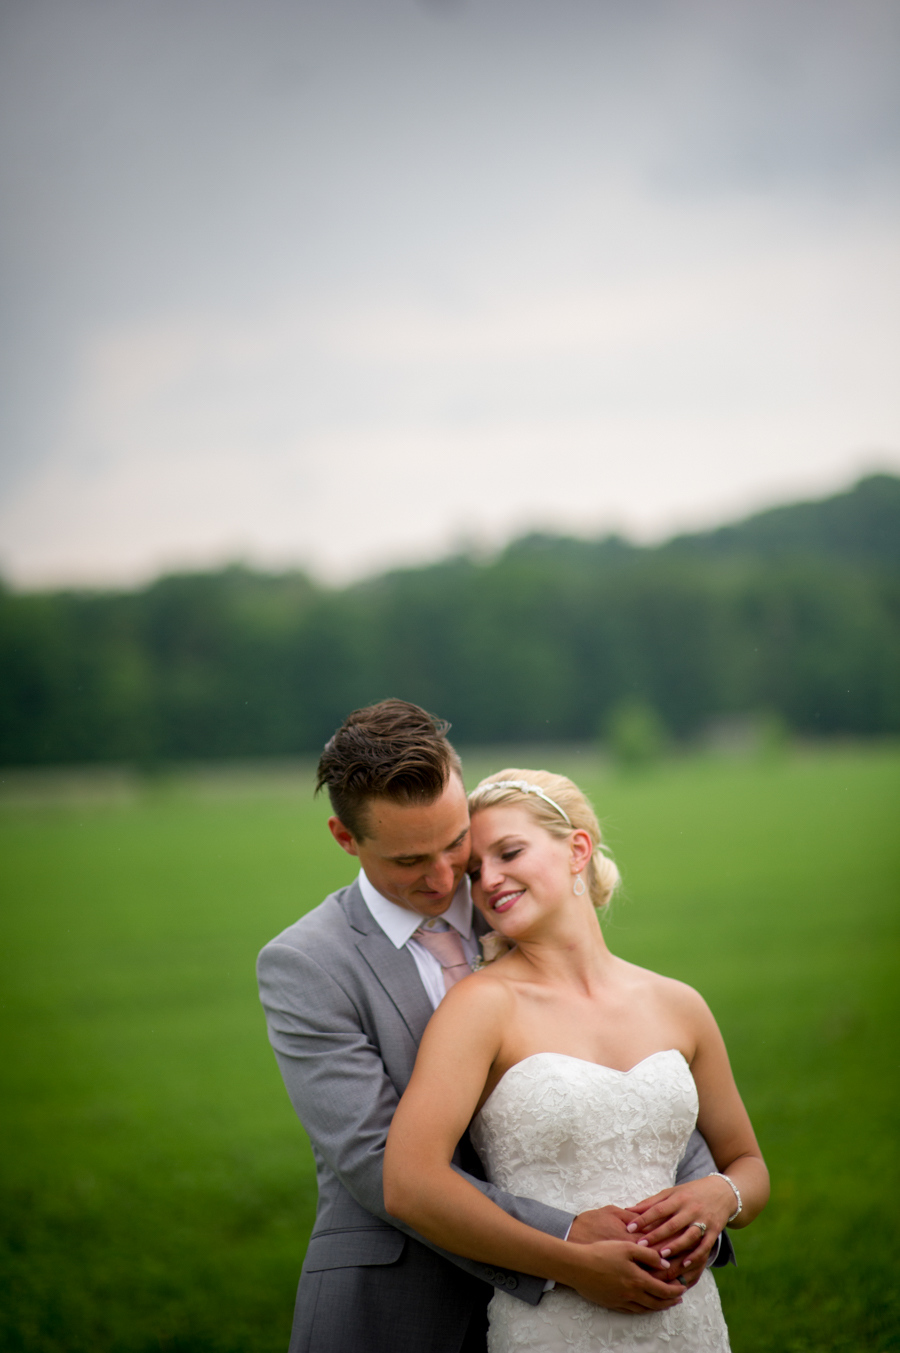 Herman-Luthers-Wedding-Photographer